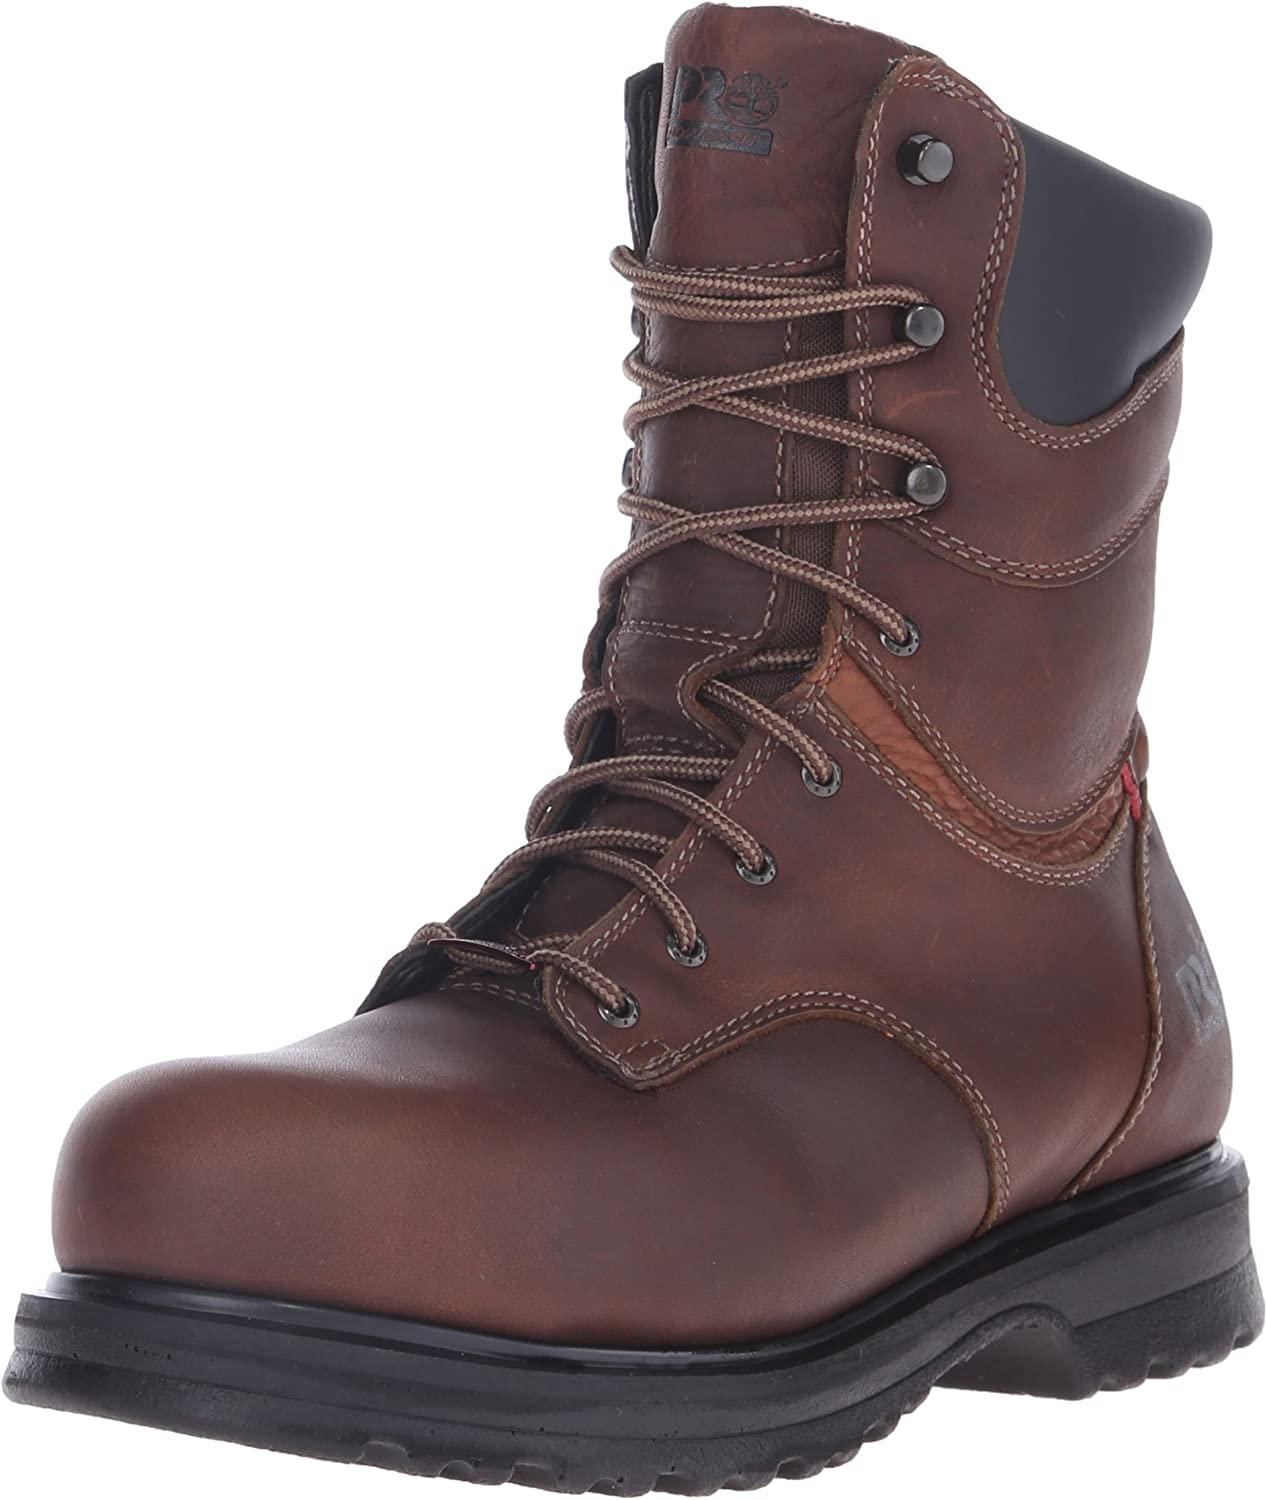 88116 Rigmaster Work Boot